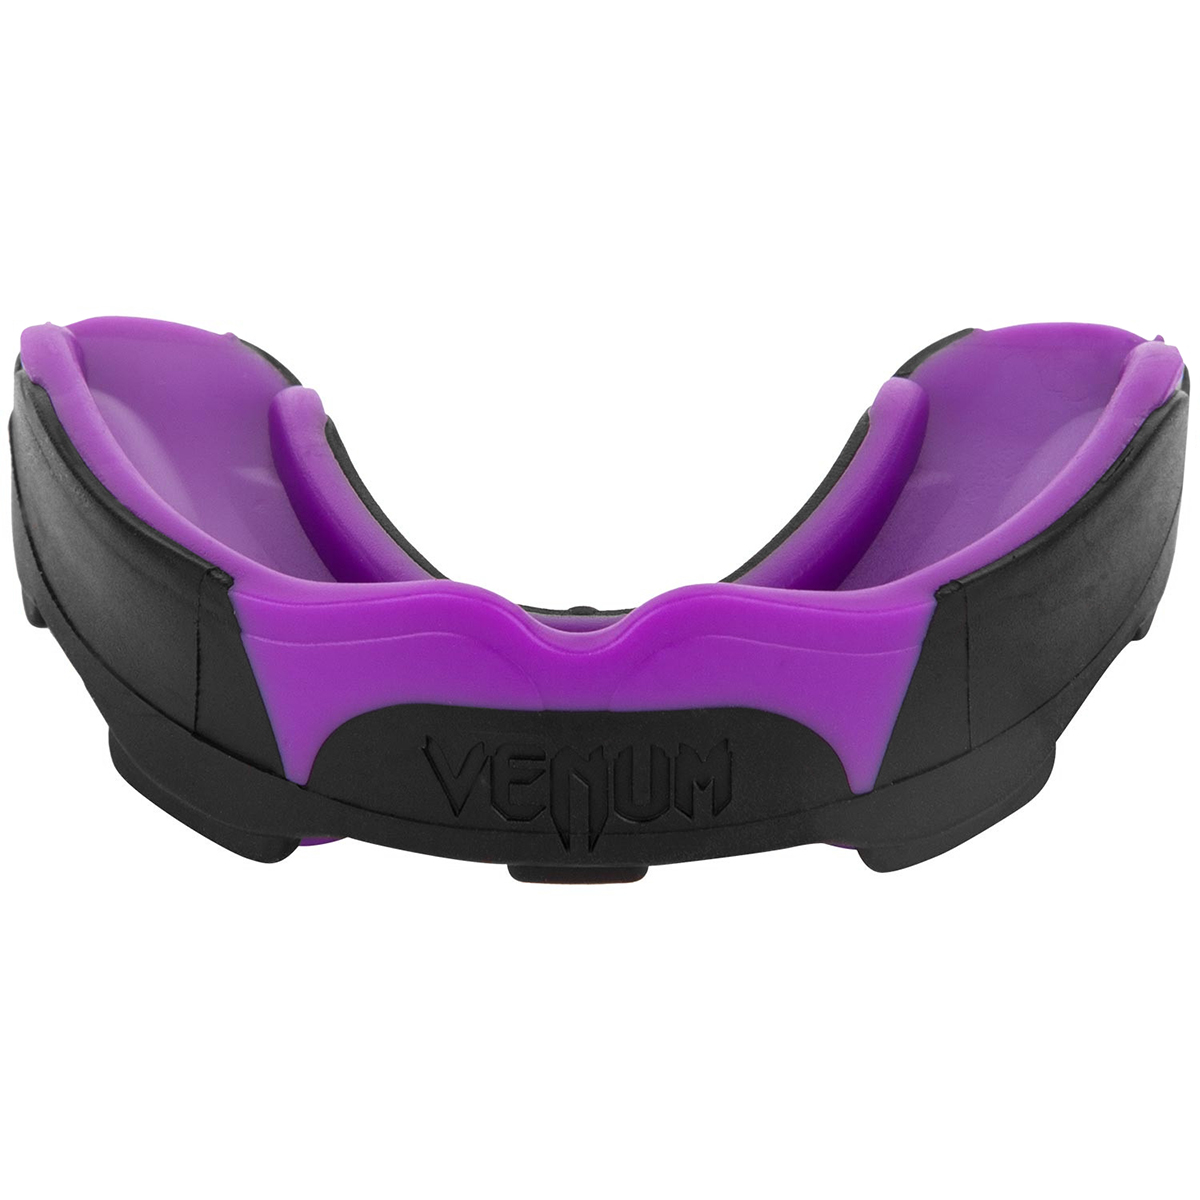 Venum Predator Mouthguard - Black/Purple